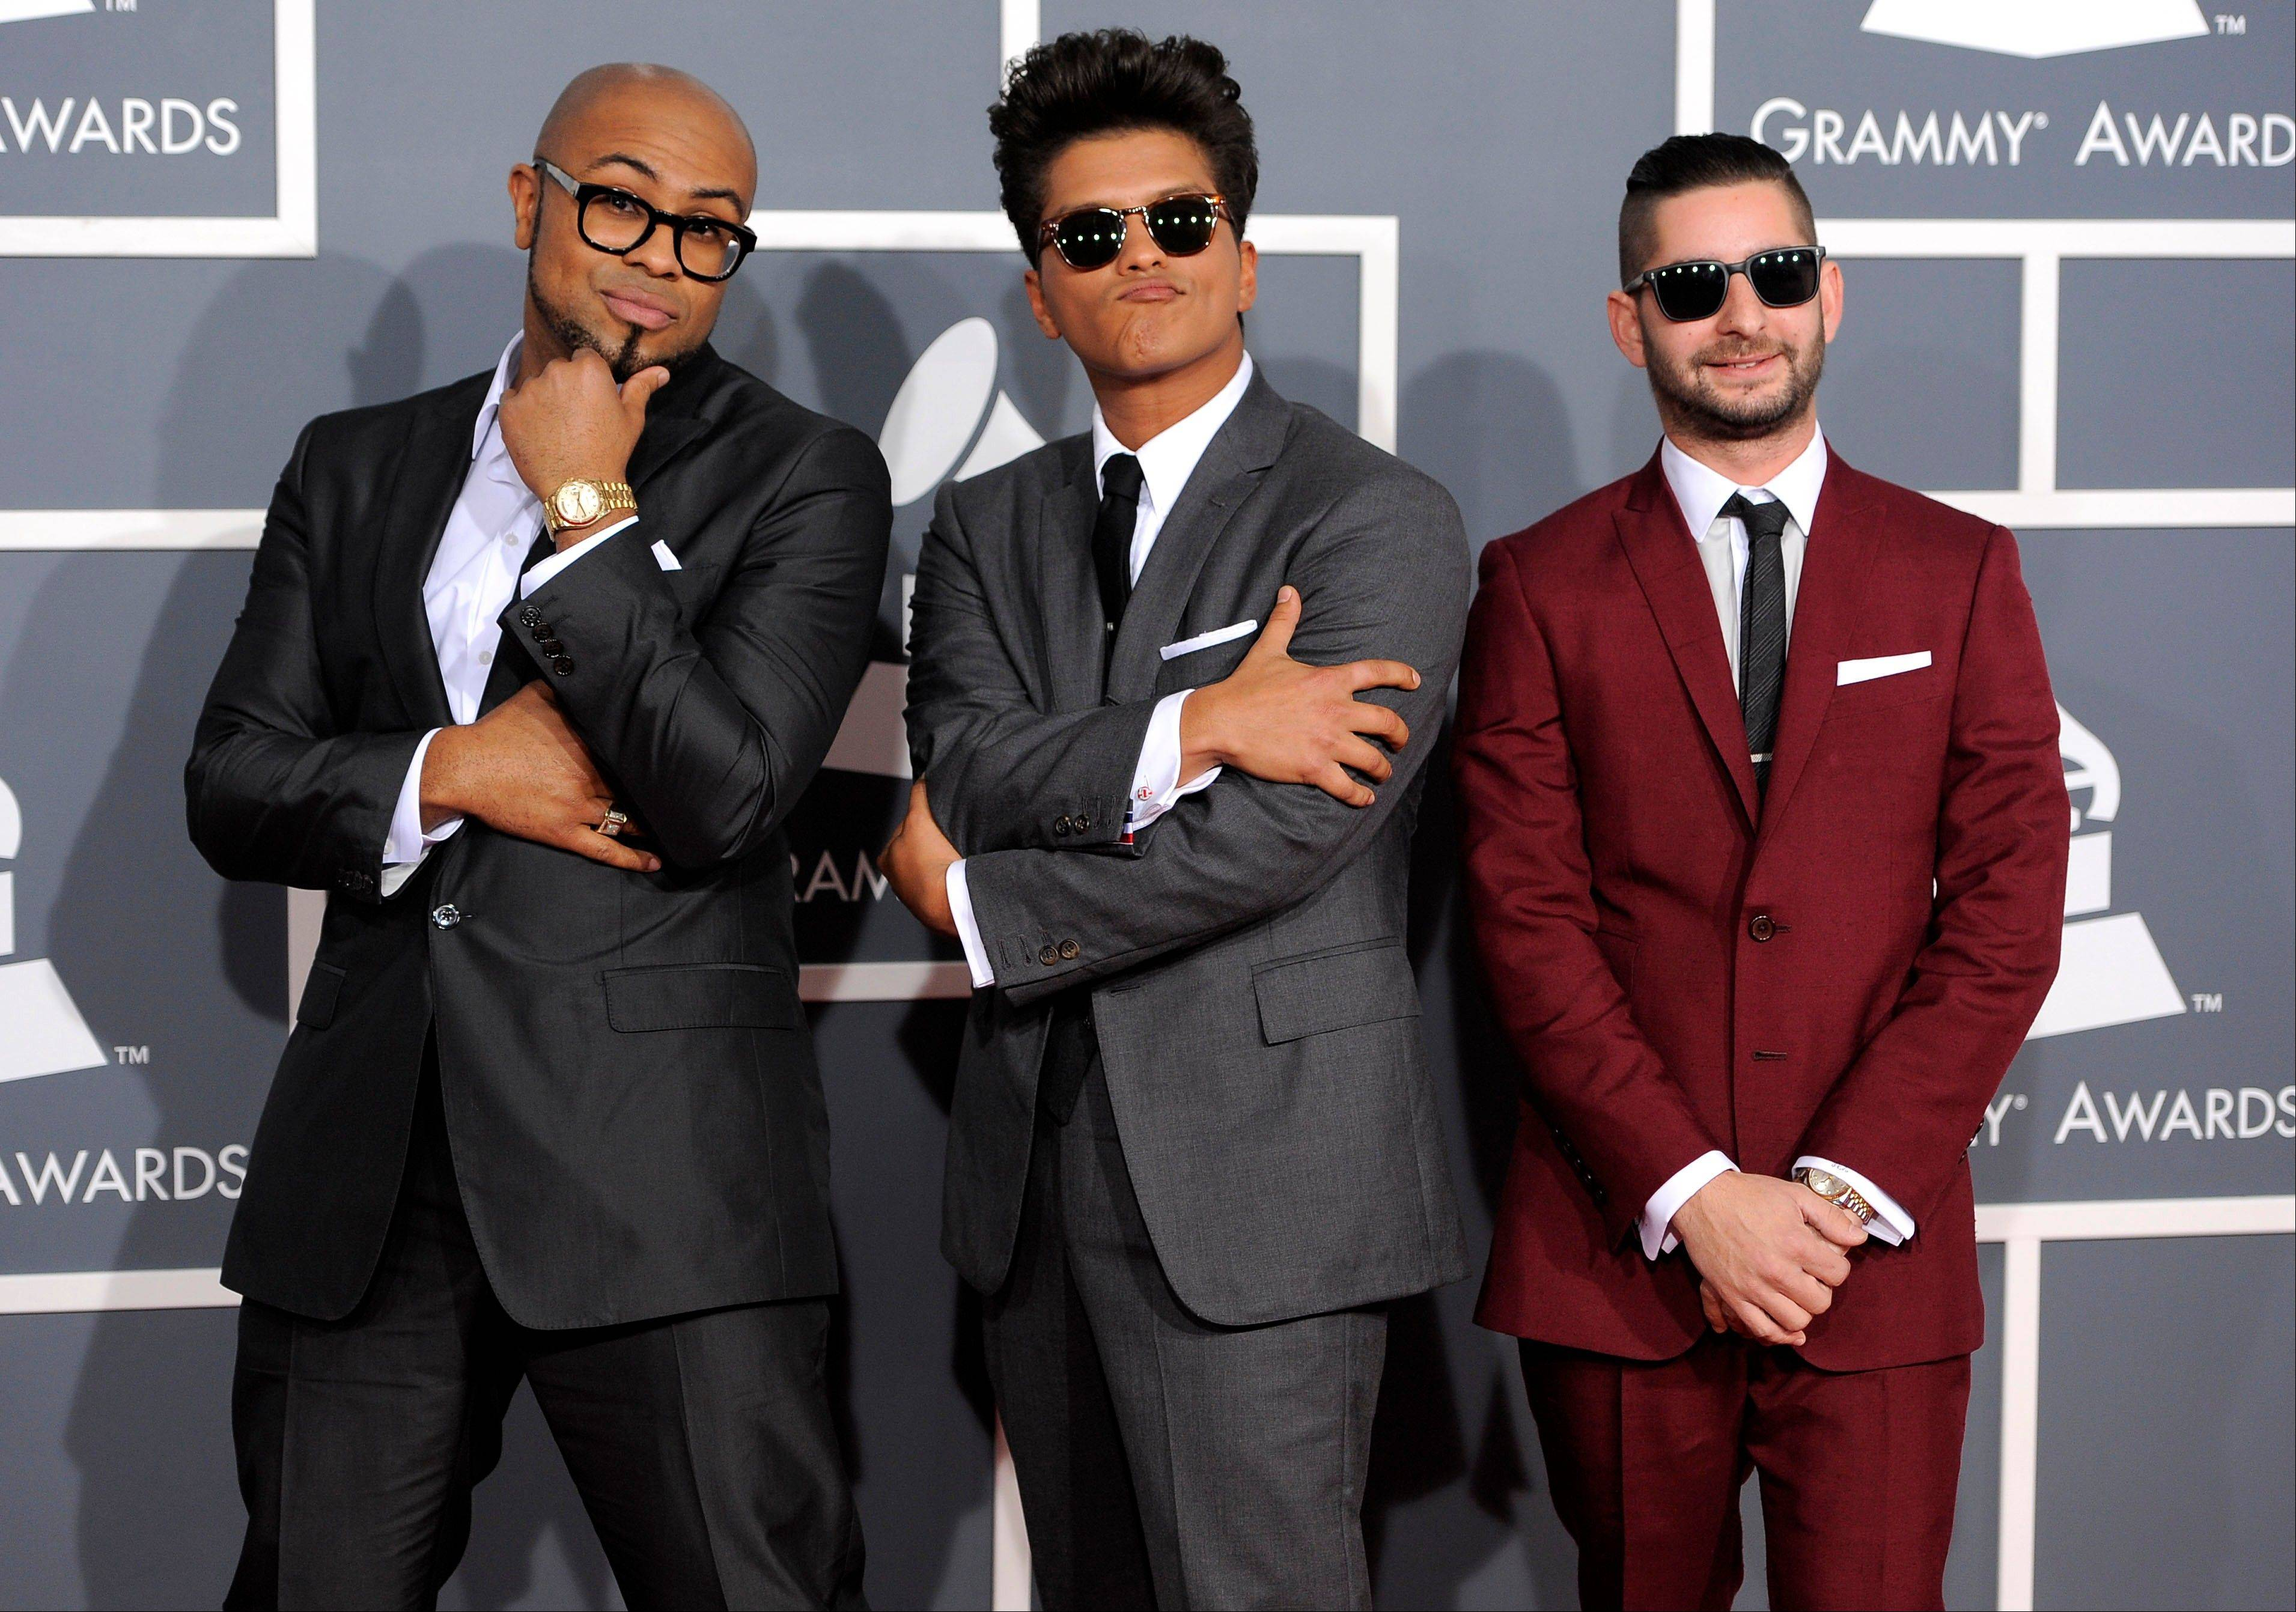 Bruno Mars, center, and The Smeezingtons arrive Sunday at the 54th annual Grammy Awards in Los Angeles.